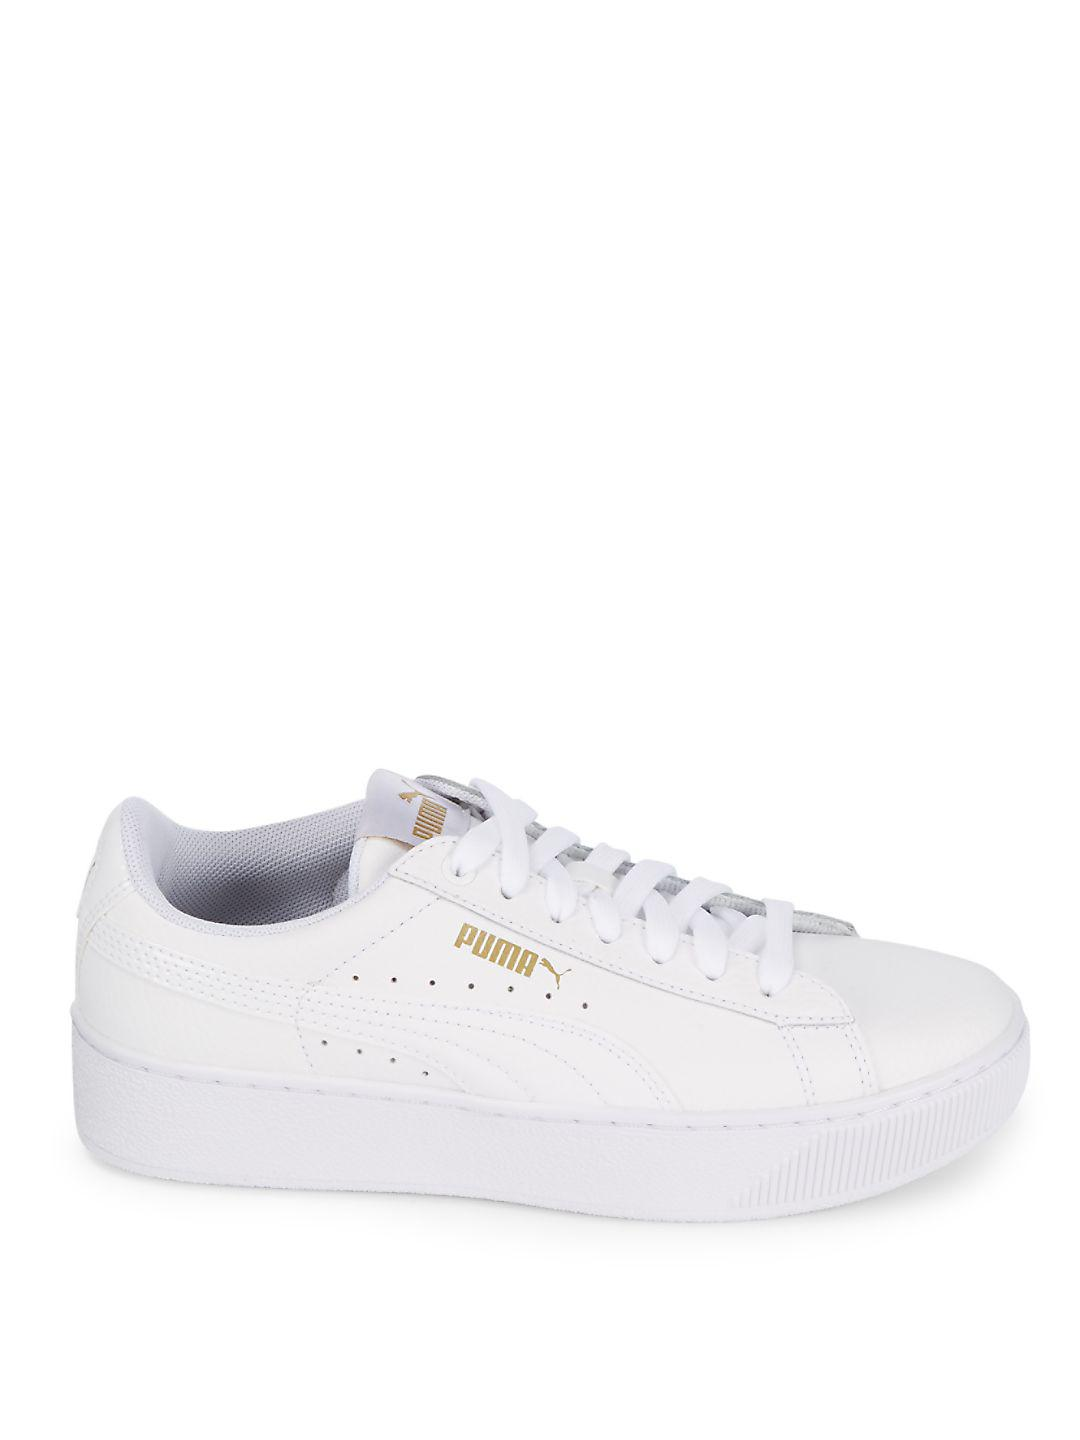 PUMA Leather Lace-up Round Toe Sneakers